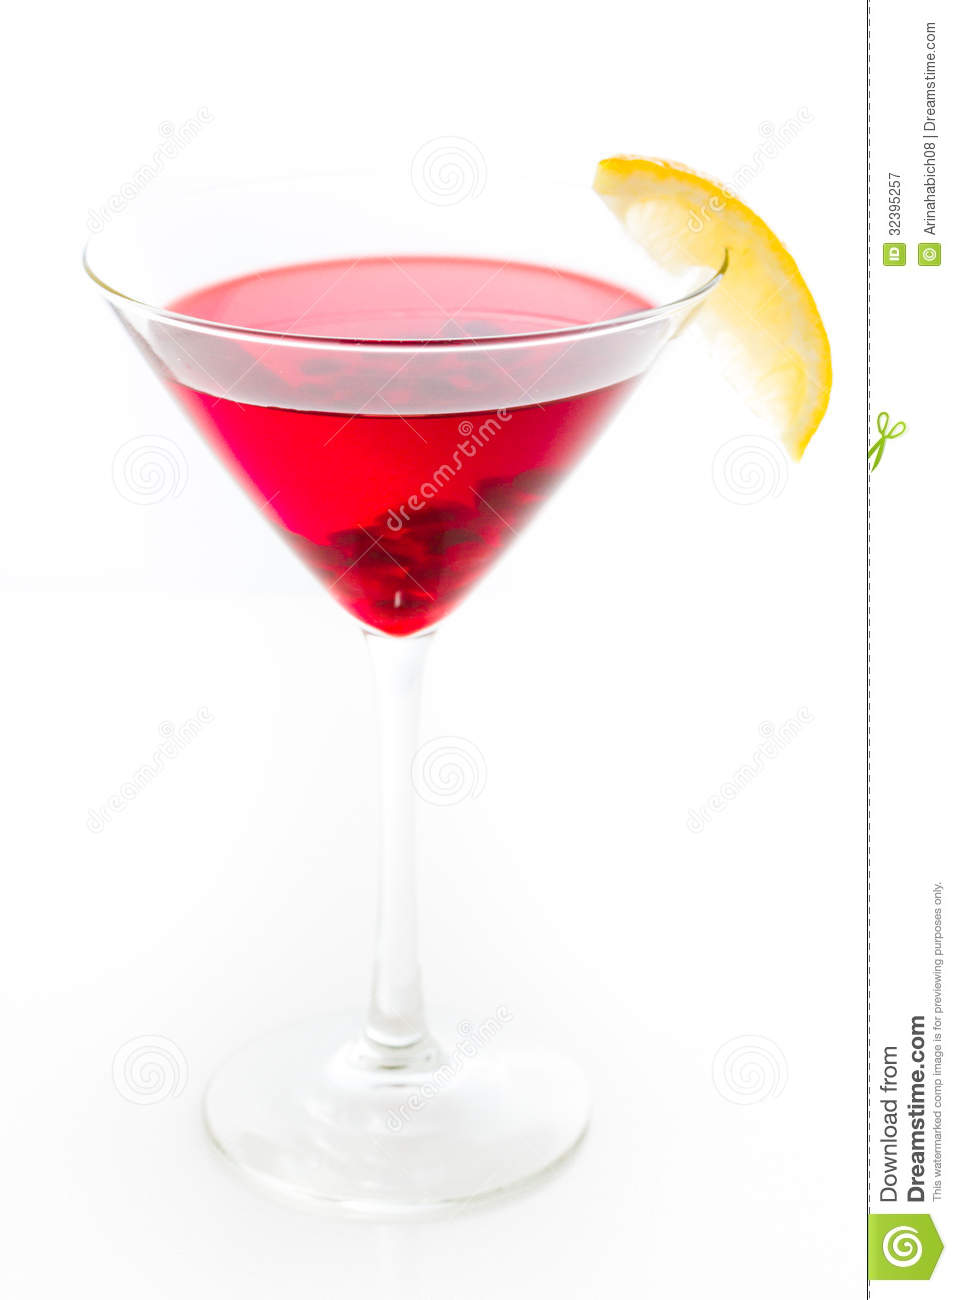 Pomegranate Cosmo Royalty Free Stock Photography - Image: 32395257